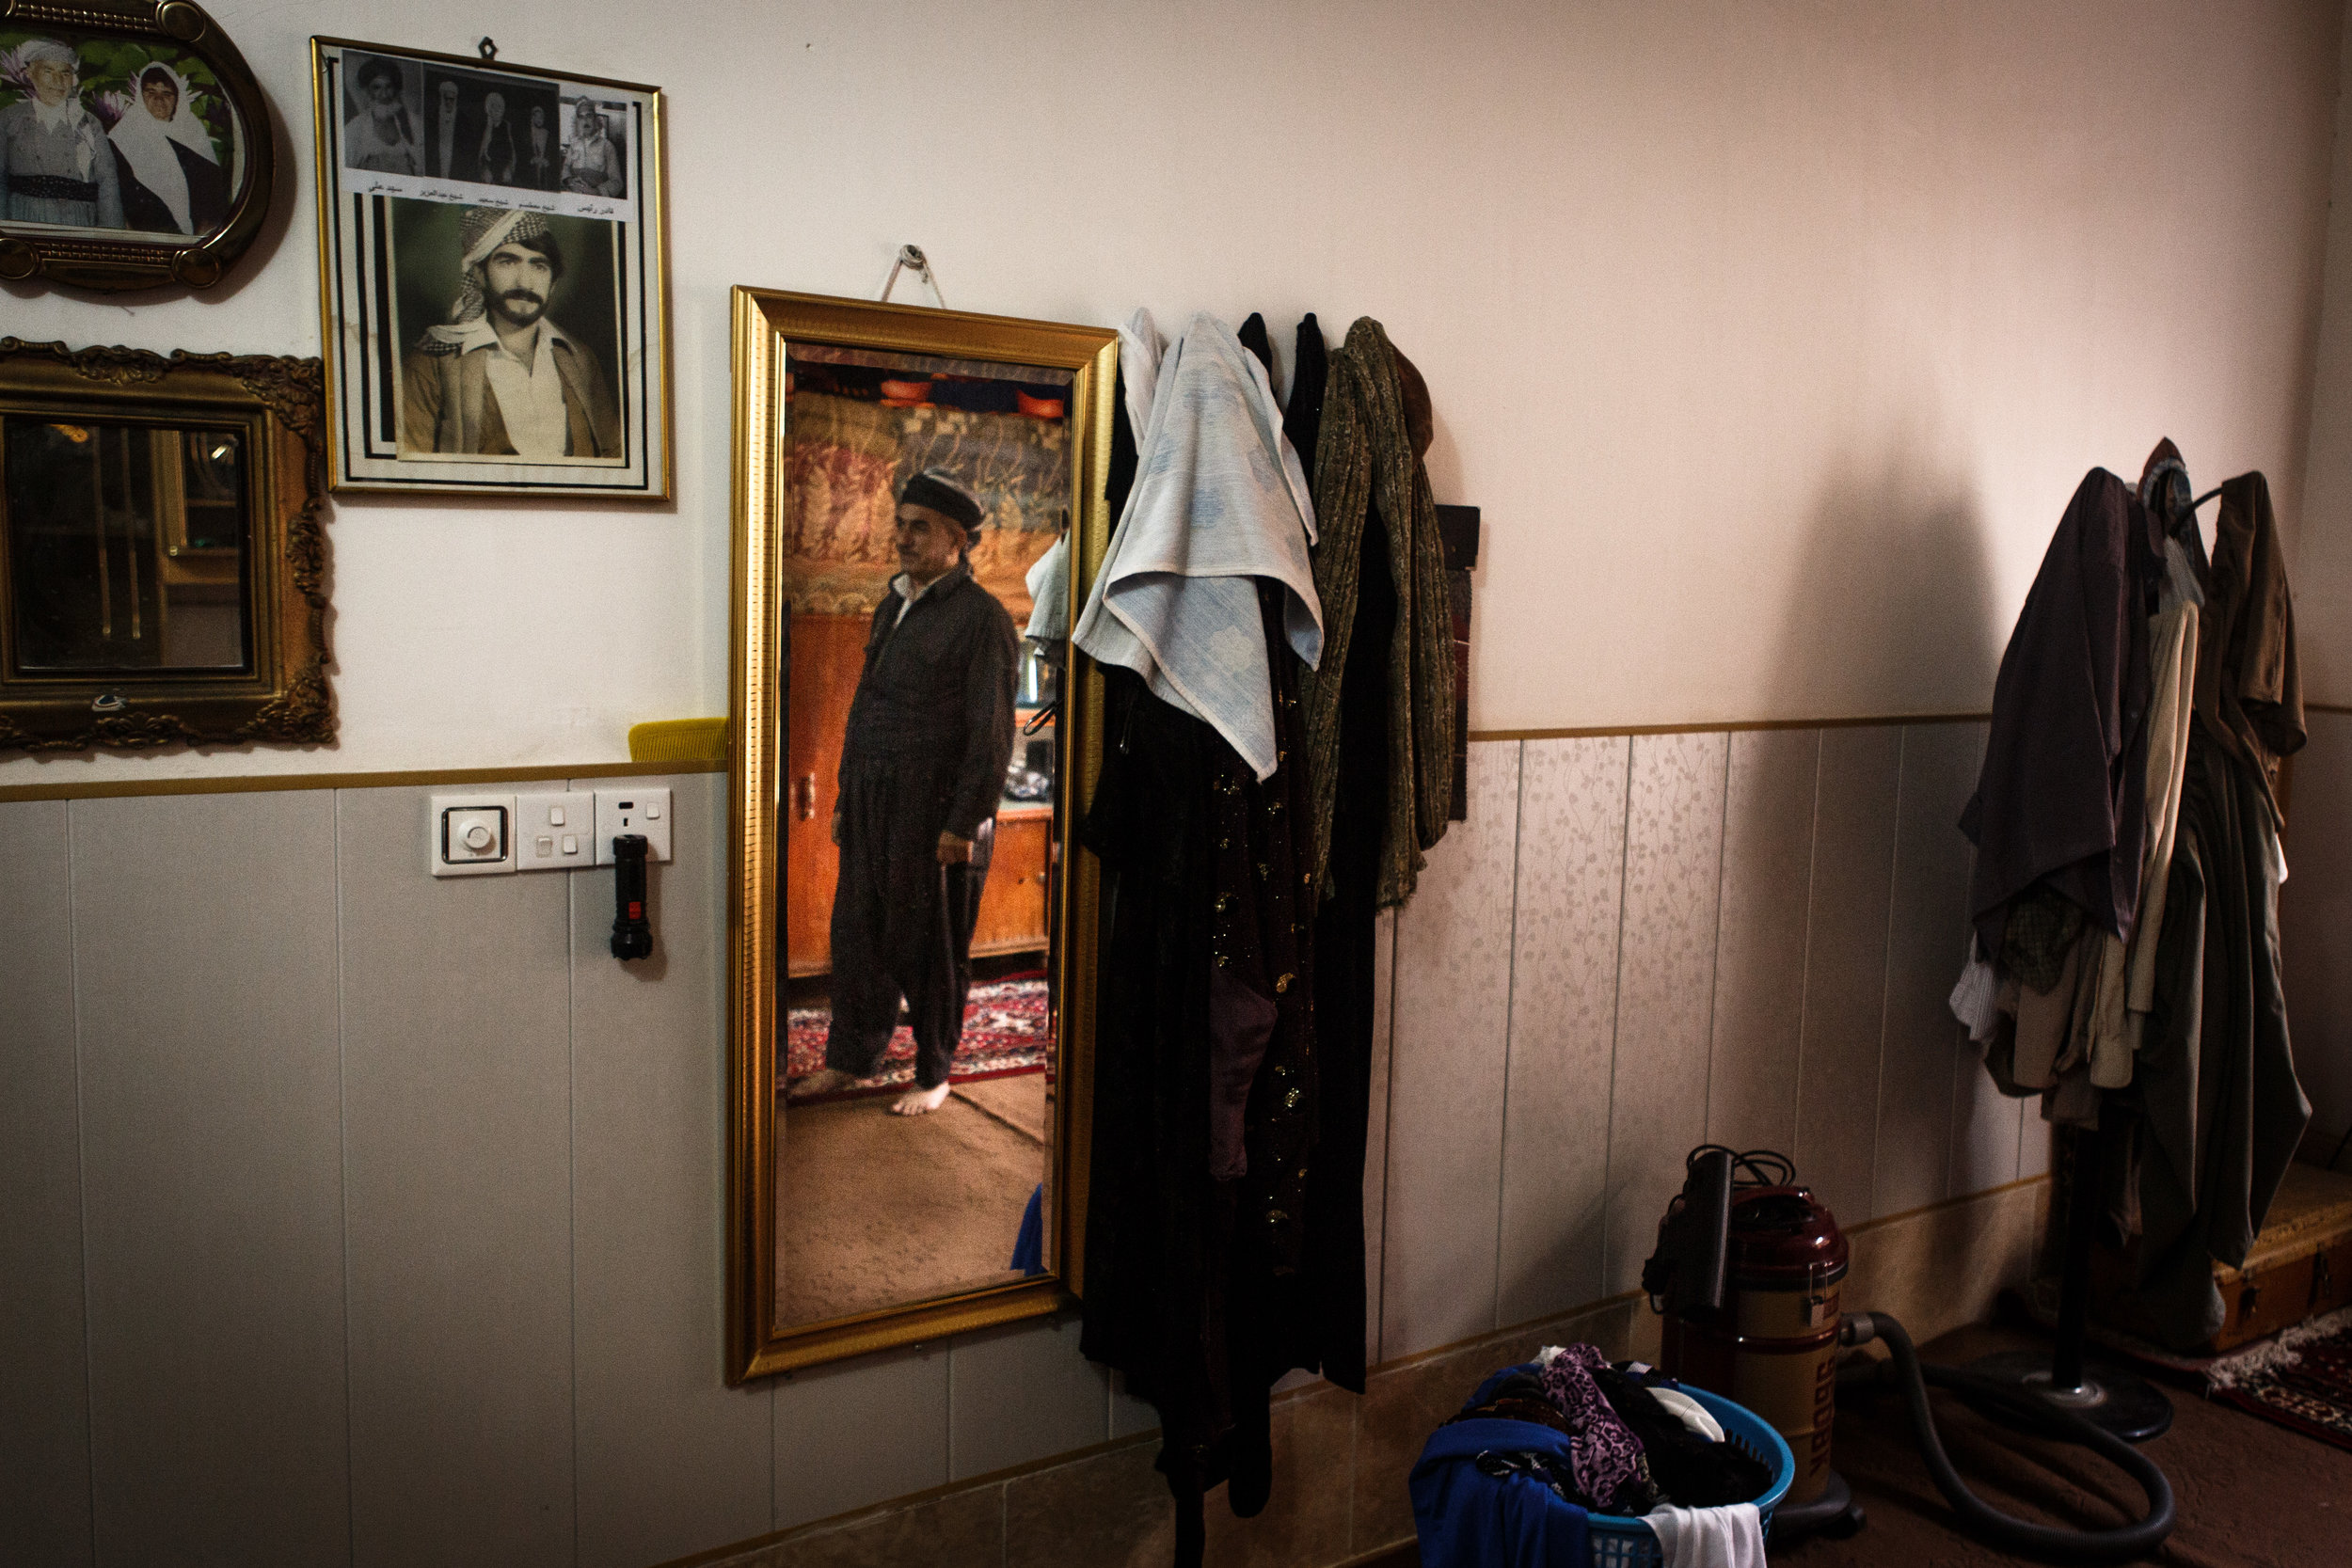 A reflection of Abdul Kadr Muhammed is seen on a mirror inside the family's bedroom in Busheon.